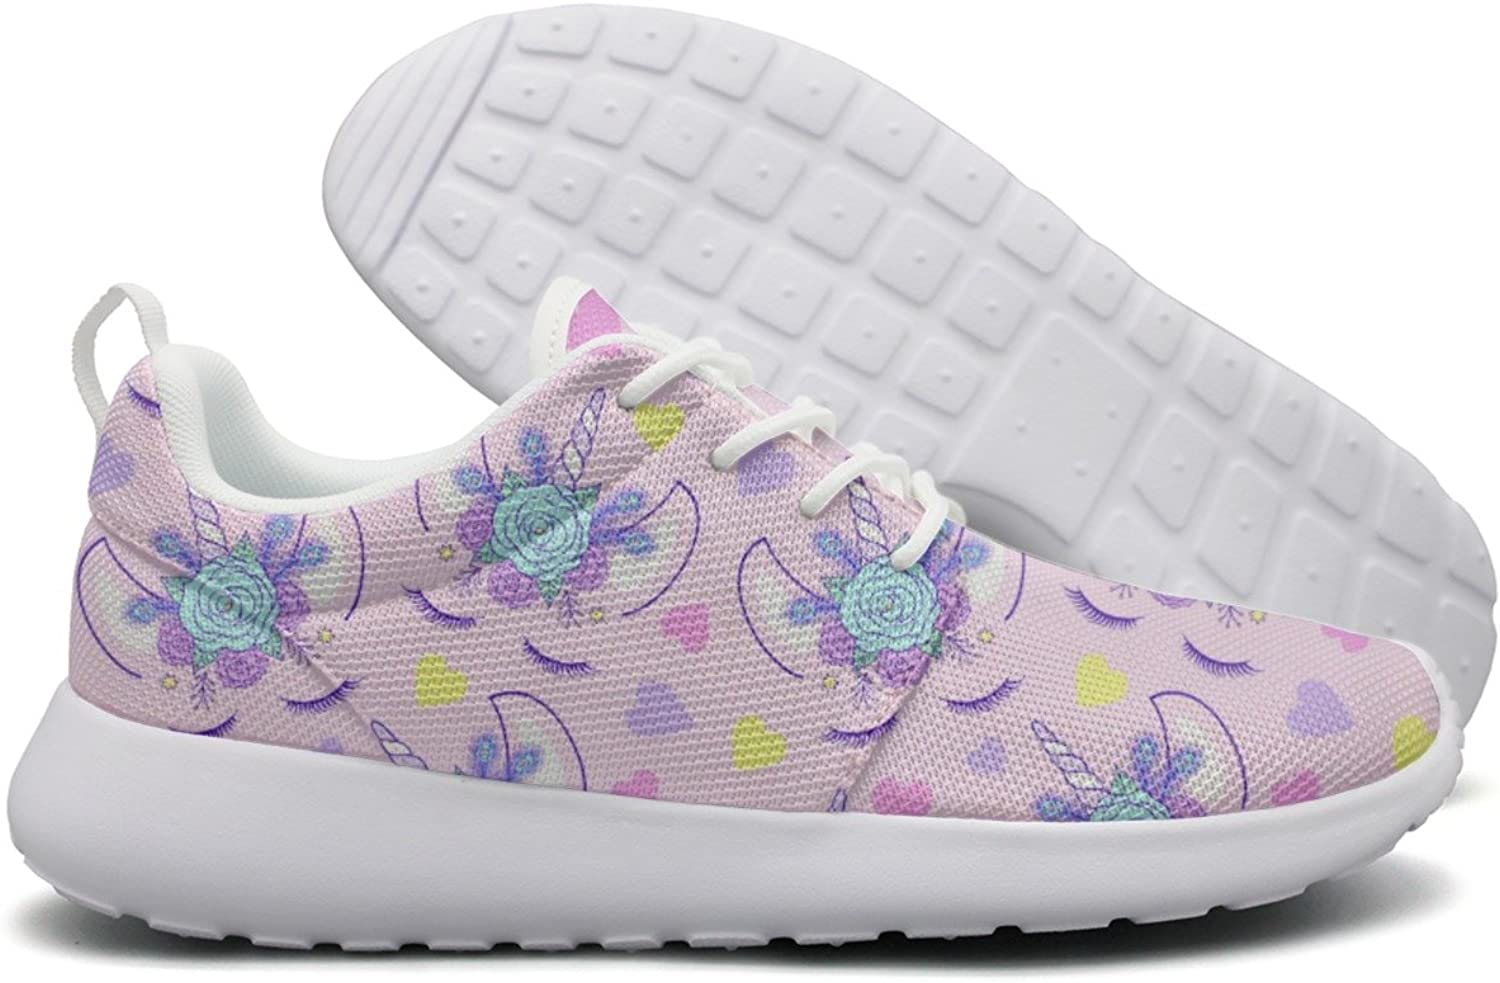 ERSER Purple Mom Nana Unicorn Head Flowers Breathable Running shoes Women